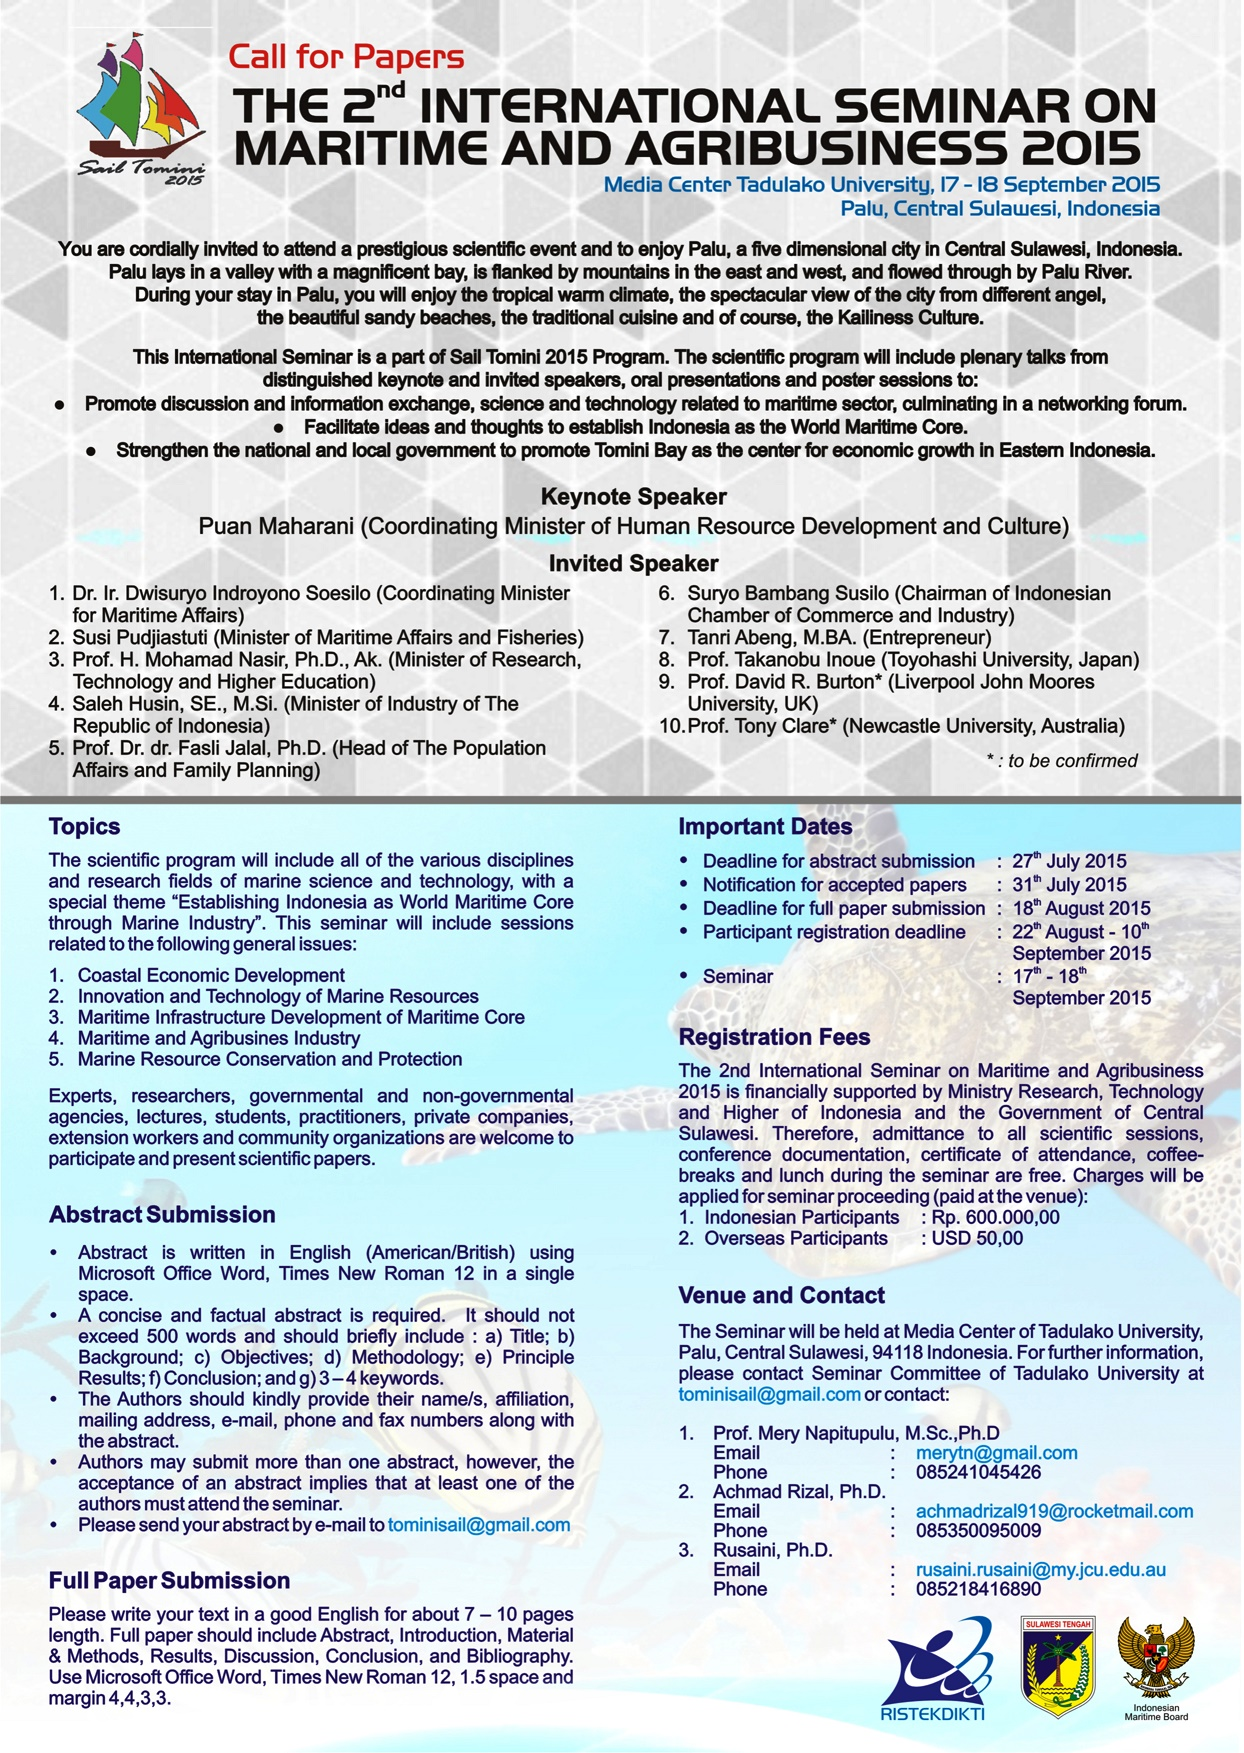 THE 2nd INTERNATIONAL SEMINAR ON MARITIME AND AGRIBUSINESS 2015